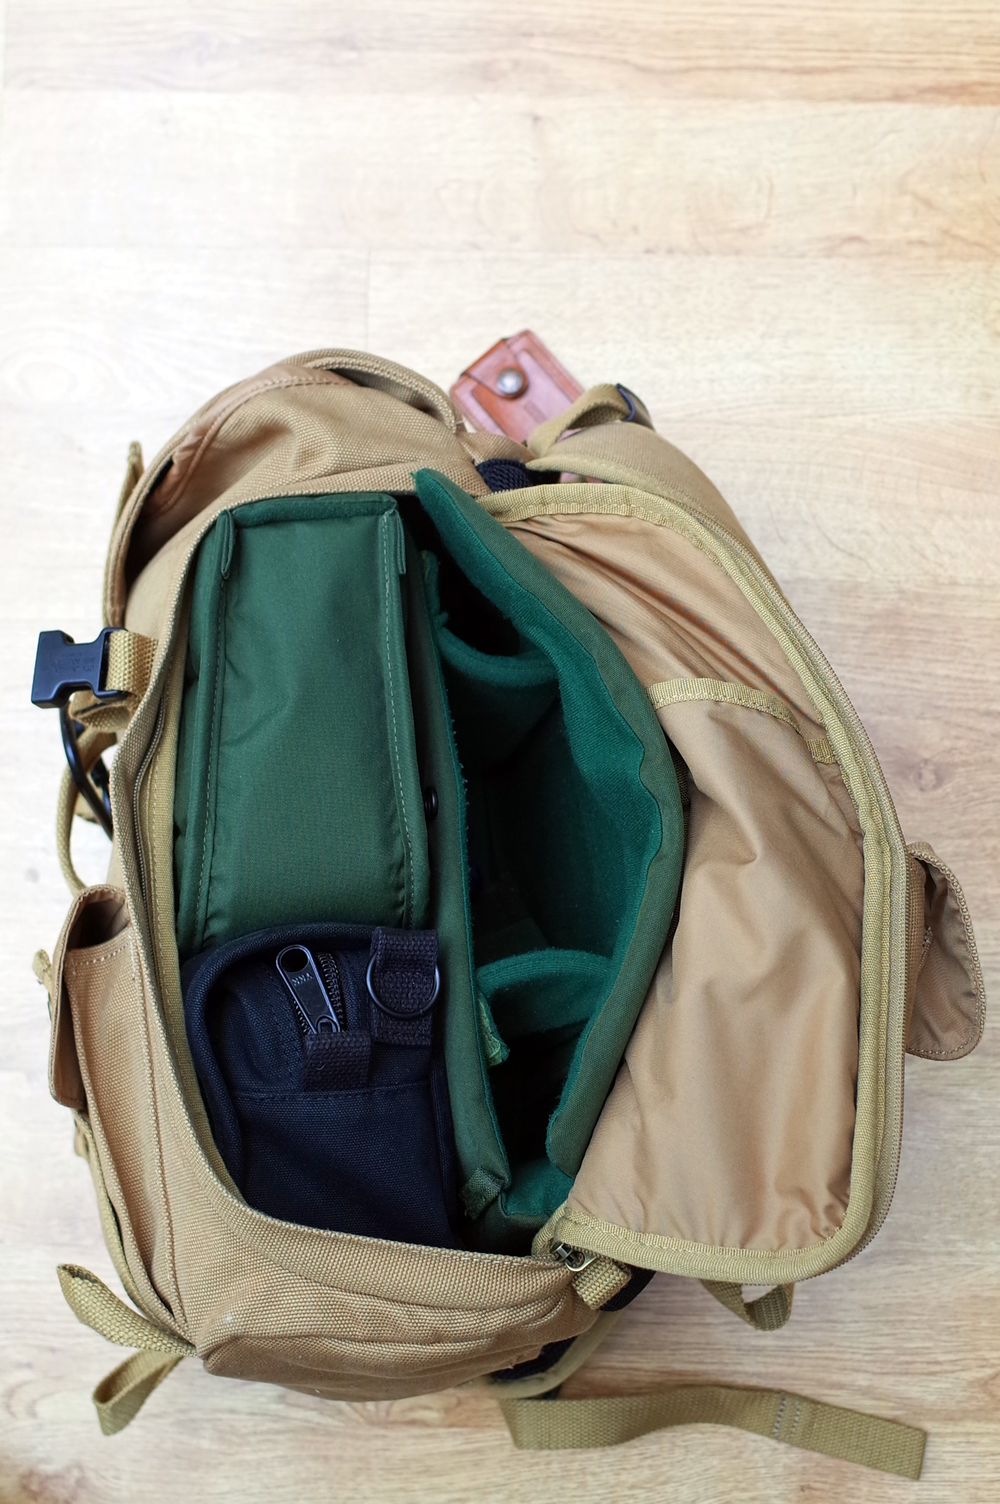 Dave rucksack, Domke and Hadley inserts